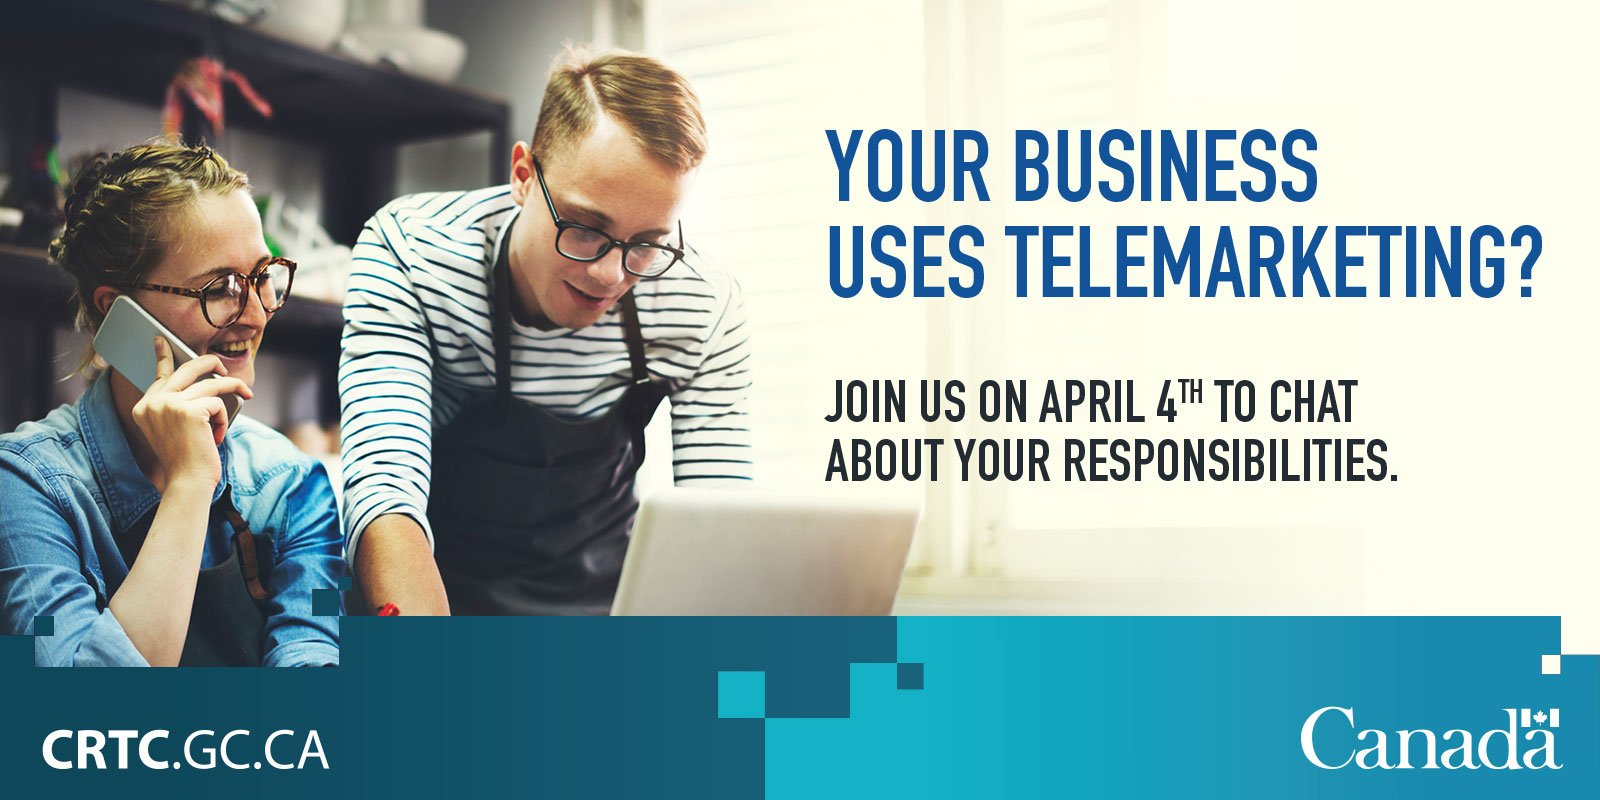 Join our #SMEPME Twitter chat Apr. 4 at noon EDT with @CRTCeng on #telemarketing rules for #smallbiz! https://t.co/m8dgRHLrQ0 https://t.co/dHopa7YwaY